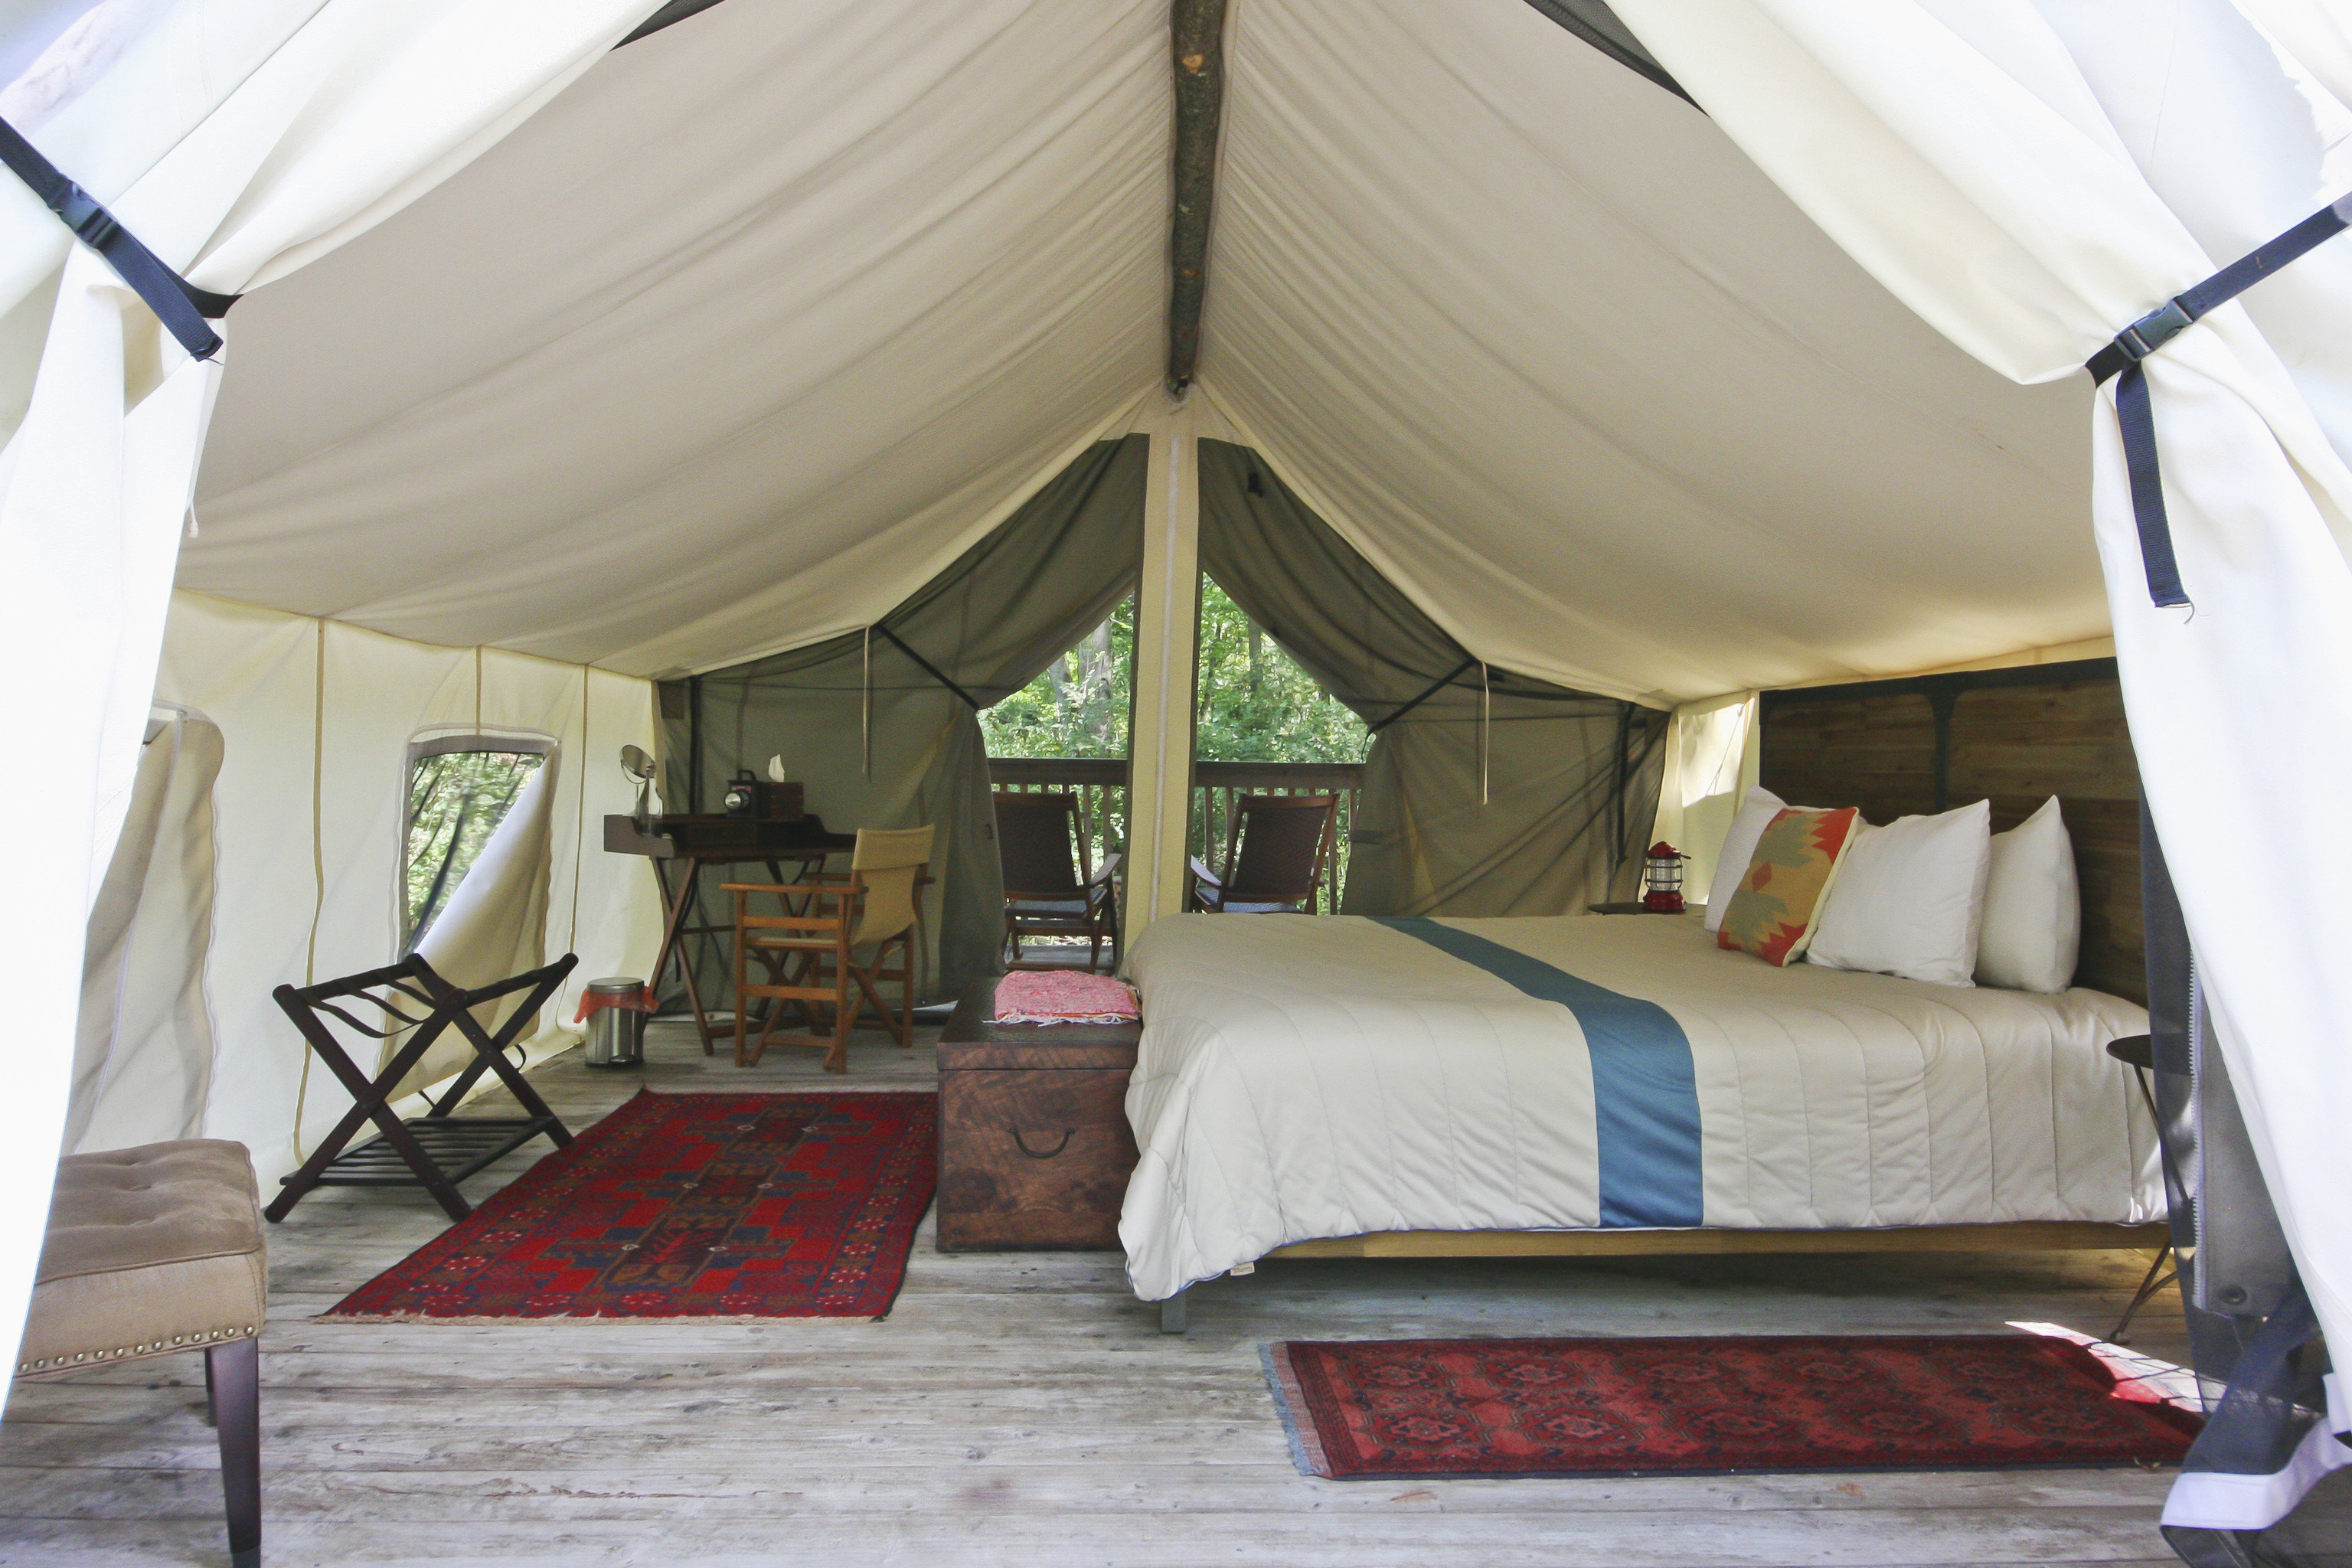 Glamping Outdoors + Adventure Weekend Getaways indoor floor tent room Bedroom camp estate outdoor object furniture